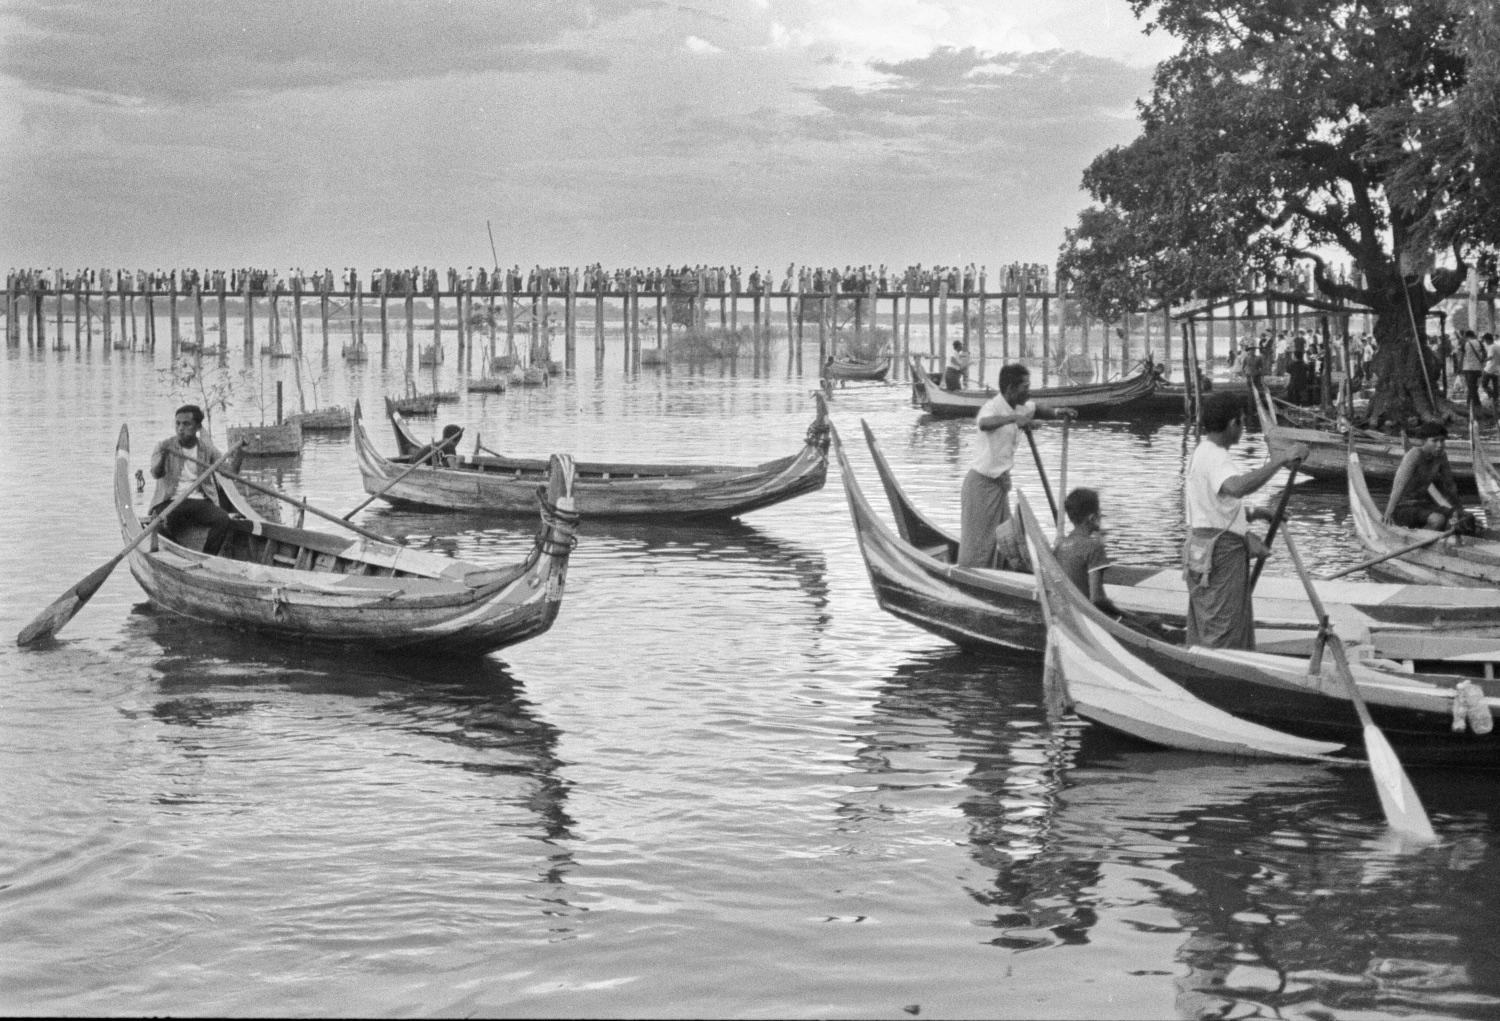 Boats on Irrawaddy River (Pic: Lester Ledesma)